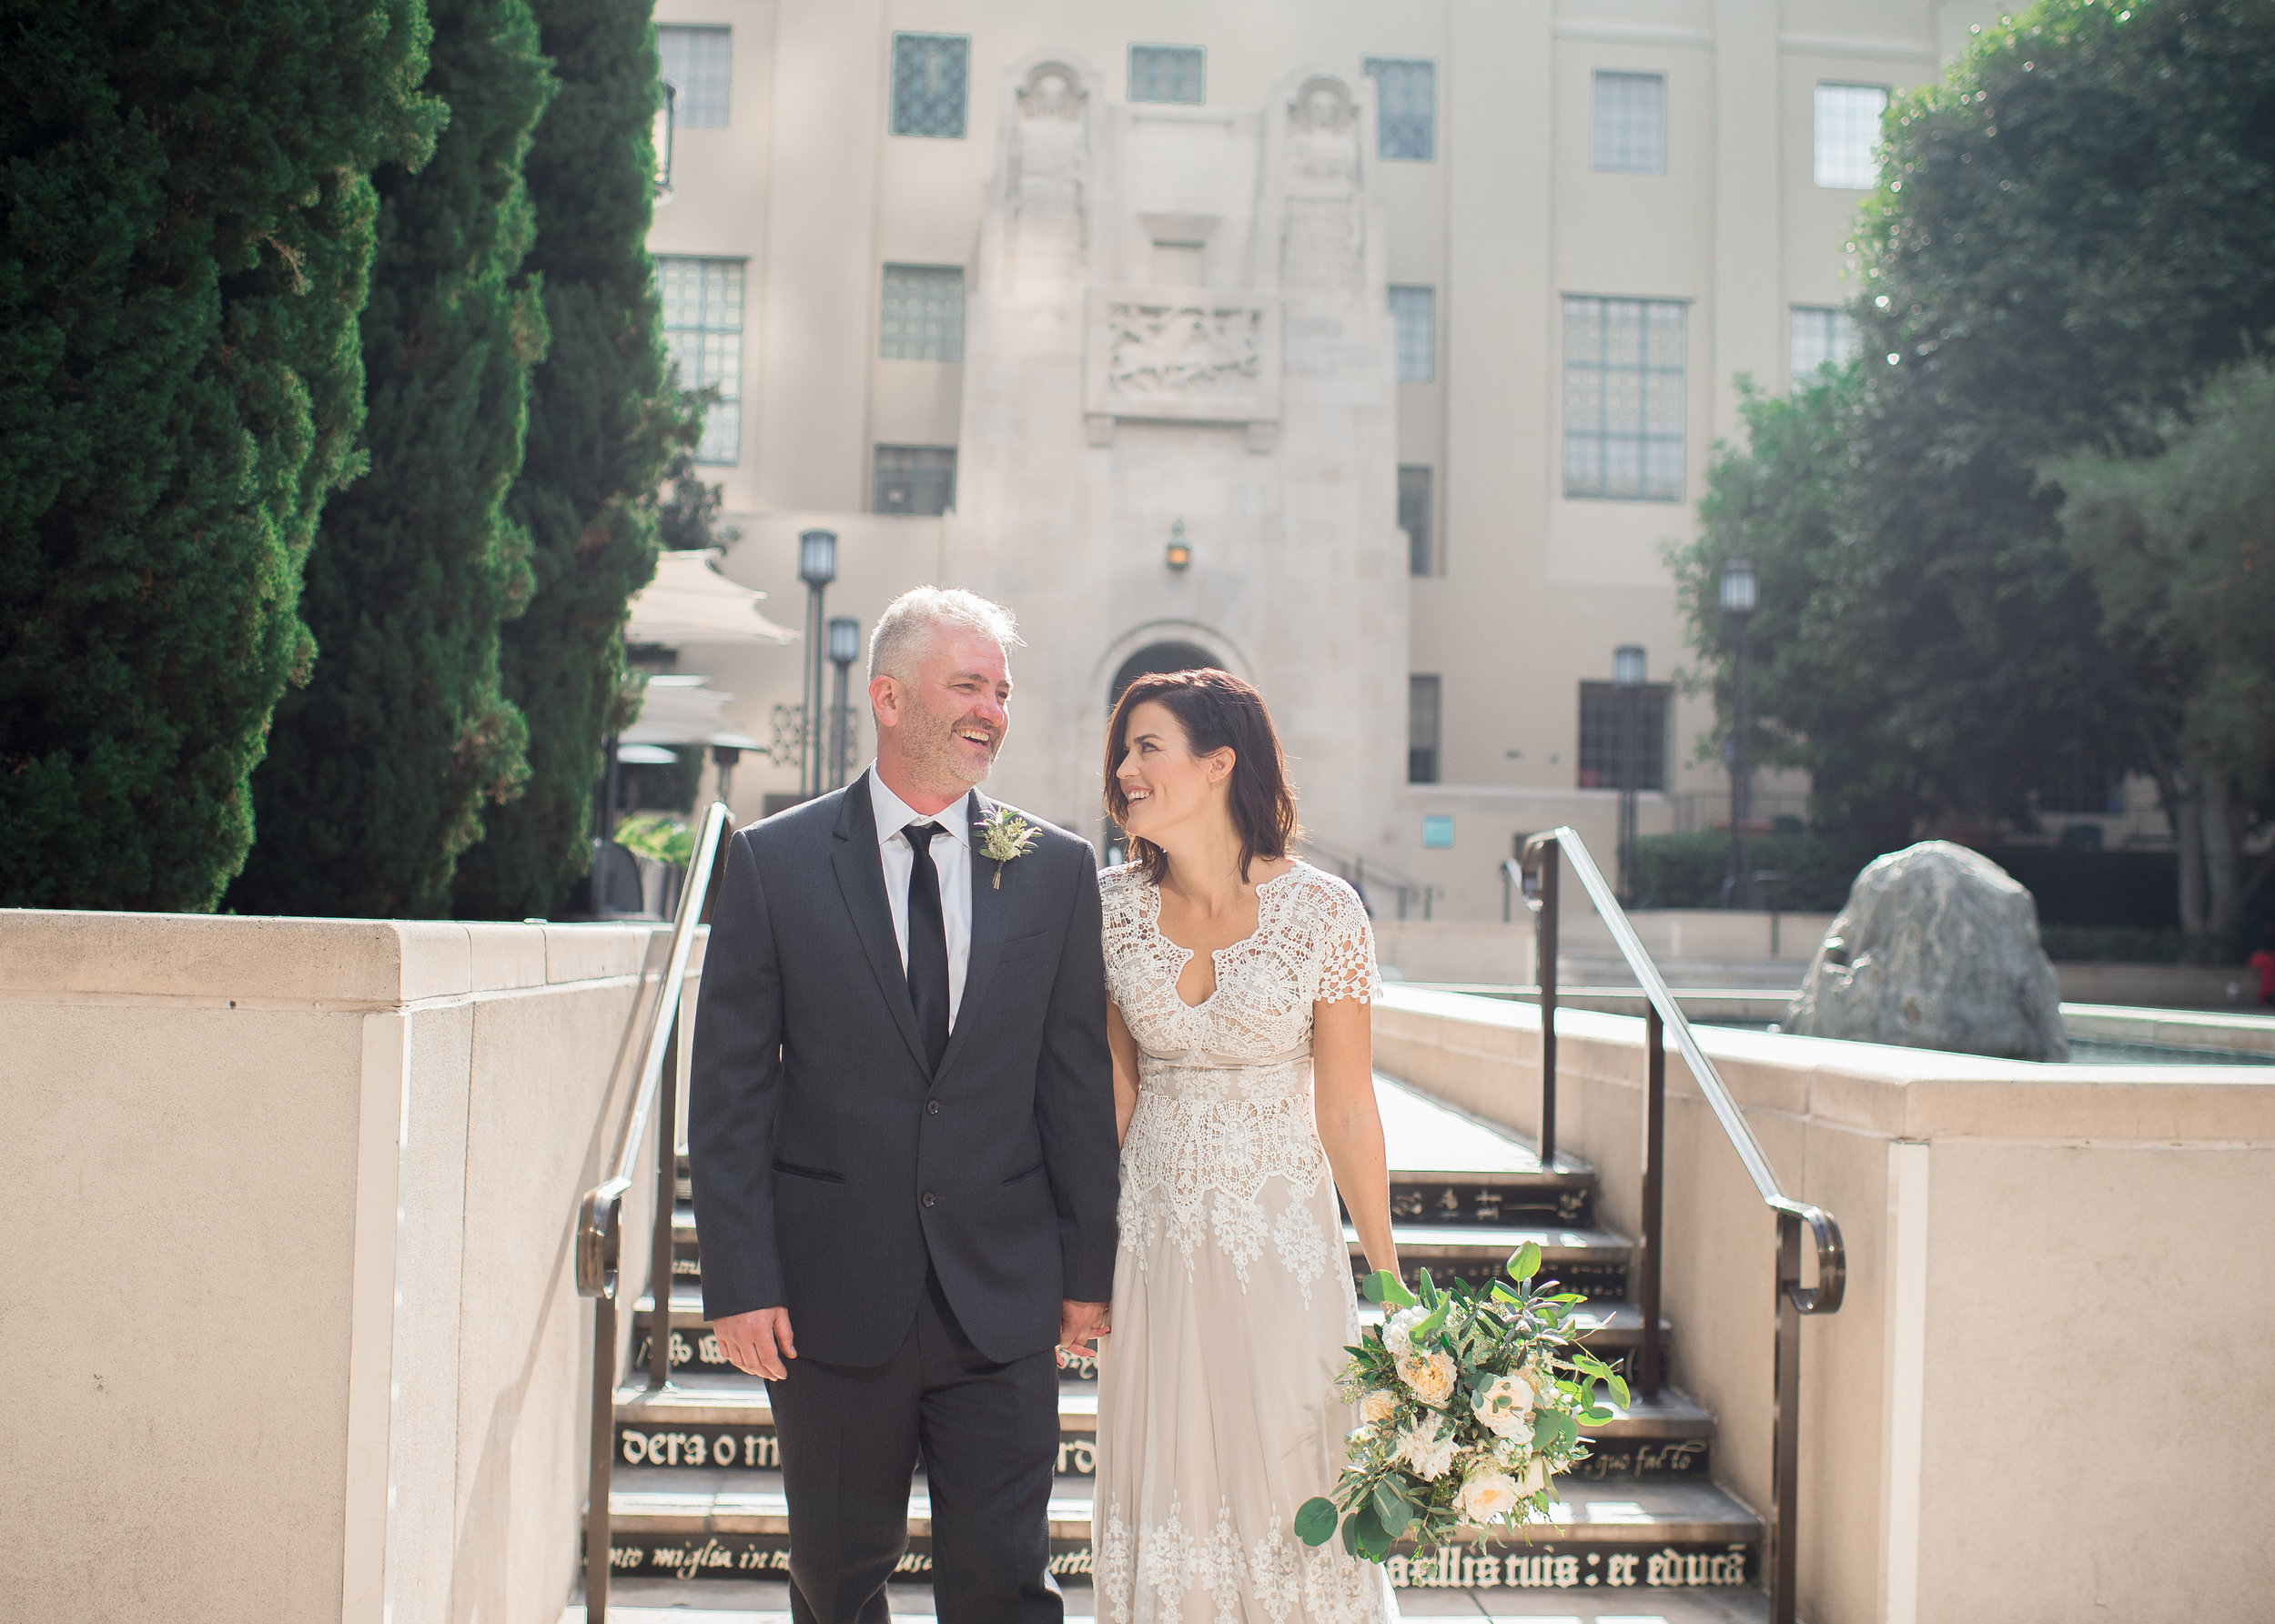 socal-wedding-consultant-best-wedding-planners-in-southern-california-cafe-pinot-wedding-planner94.jpg